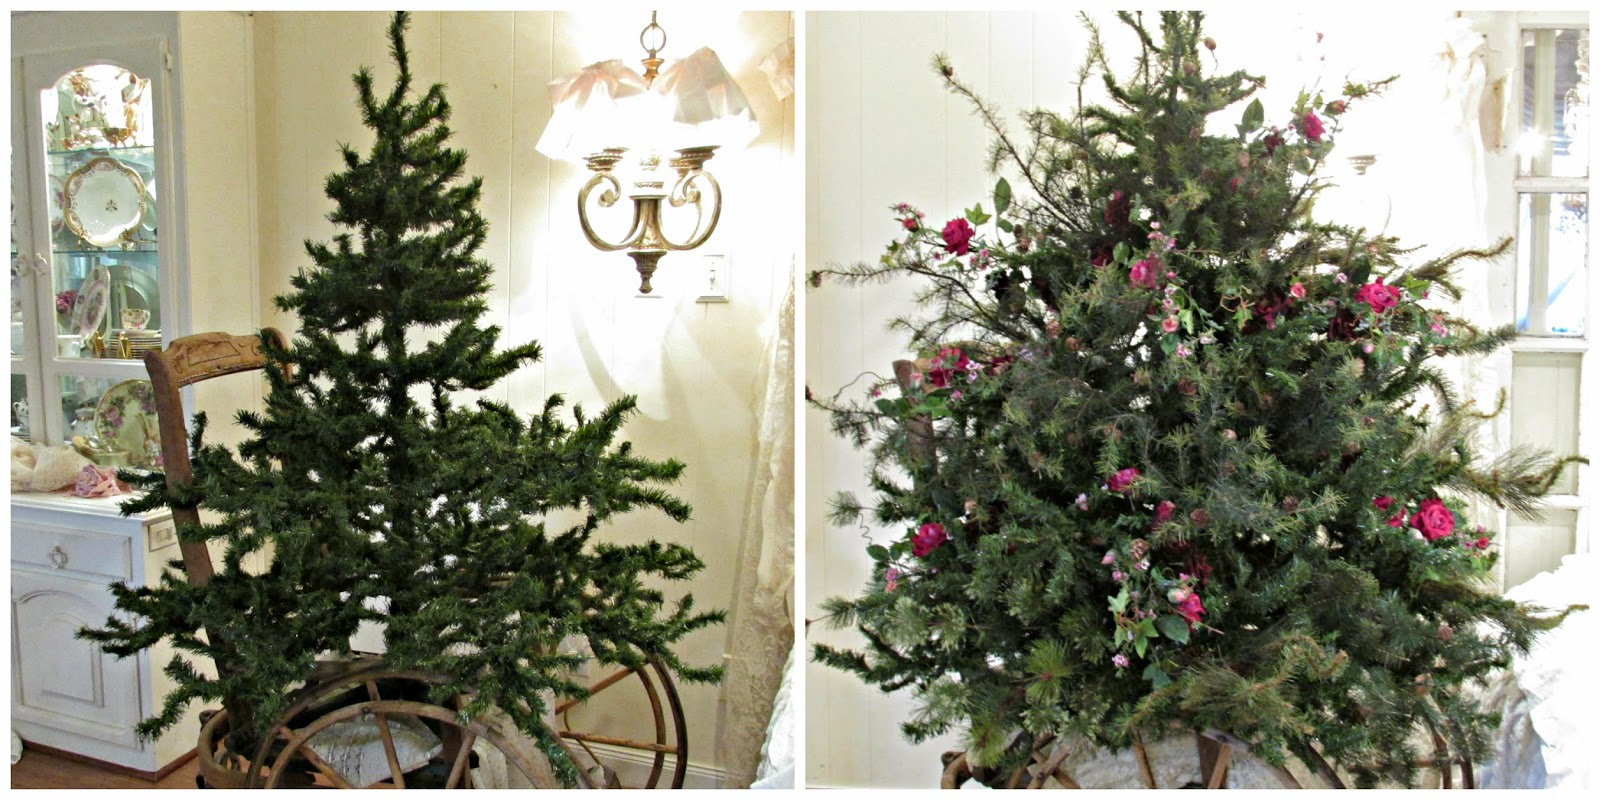 Penny's Vintage Home: How to Make a Short, Fat Christmas Tree